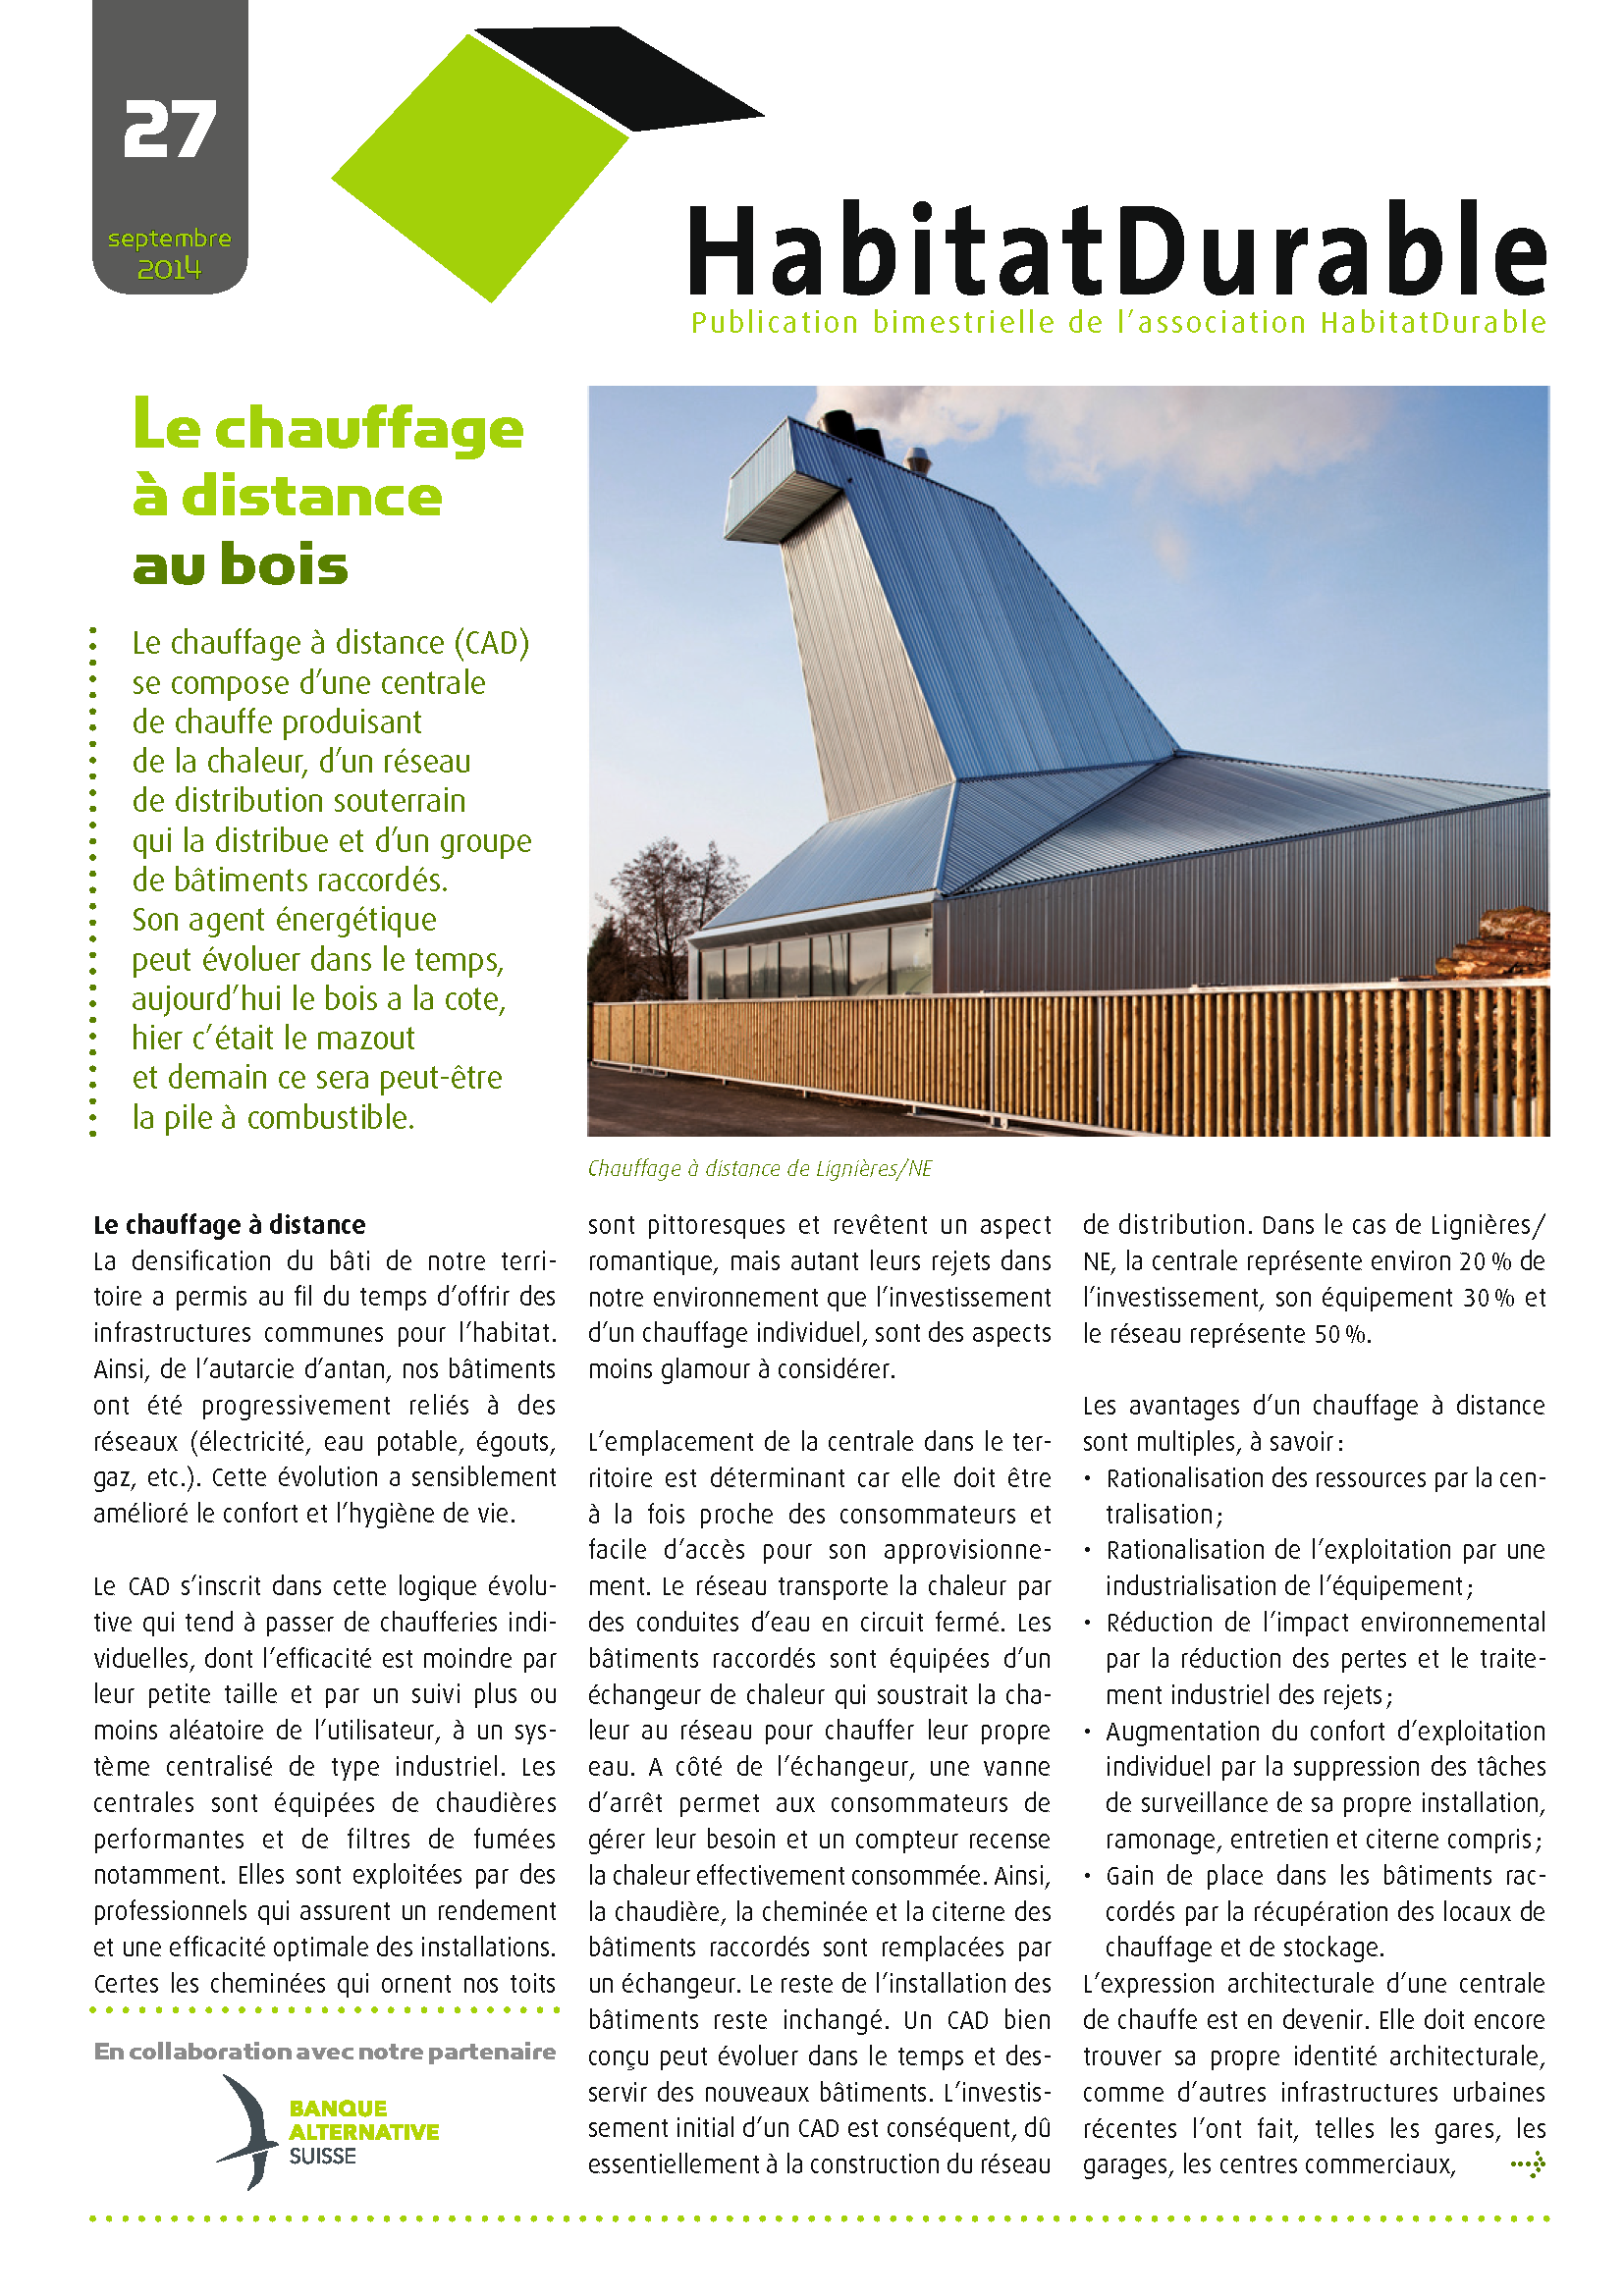 HabitatDurable 27 | septembre 2014